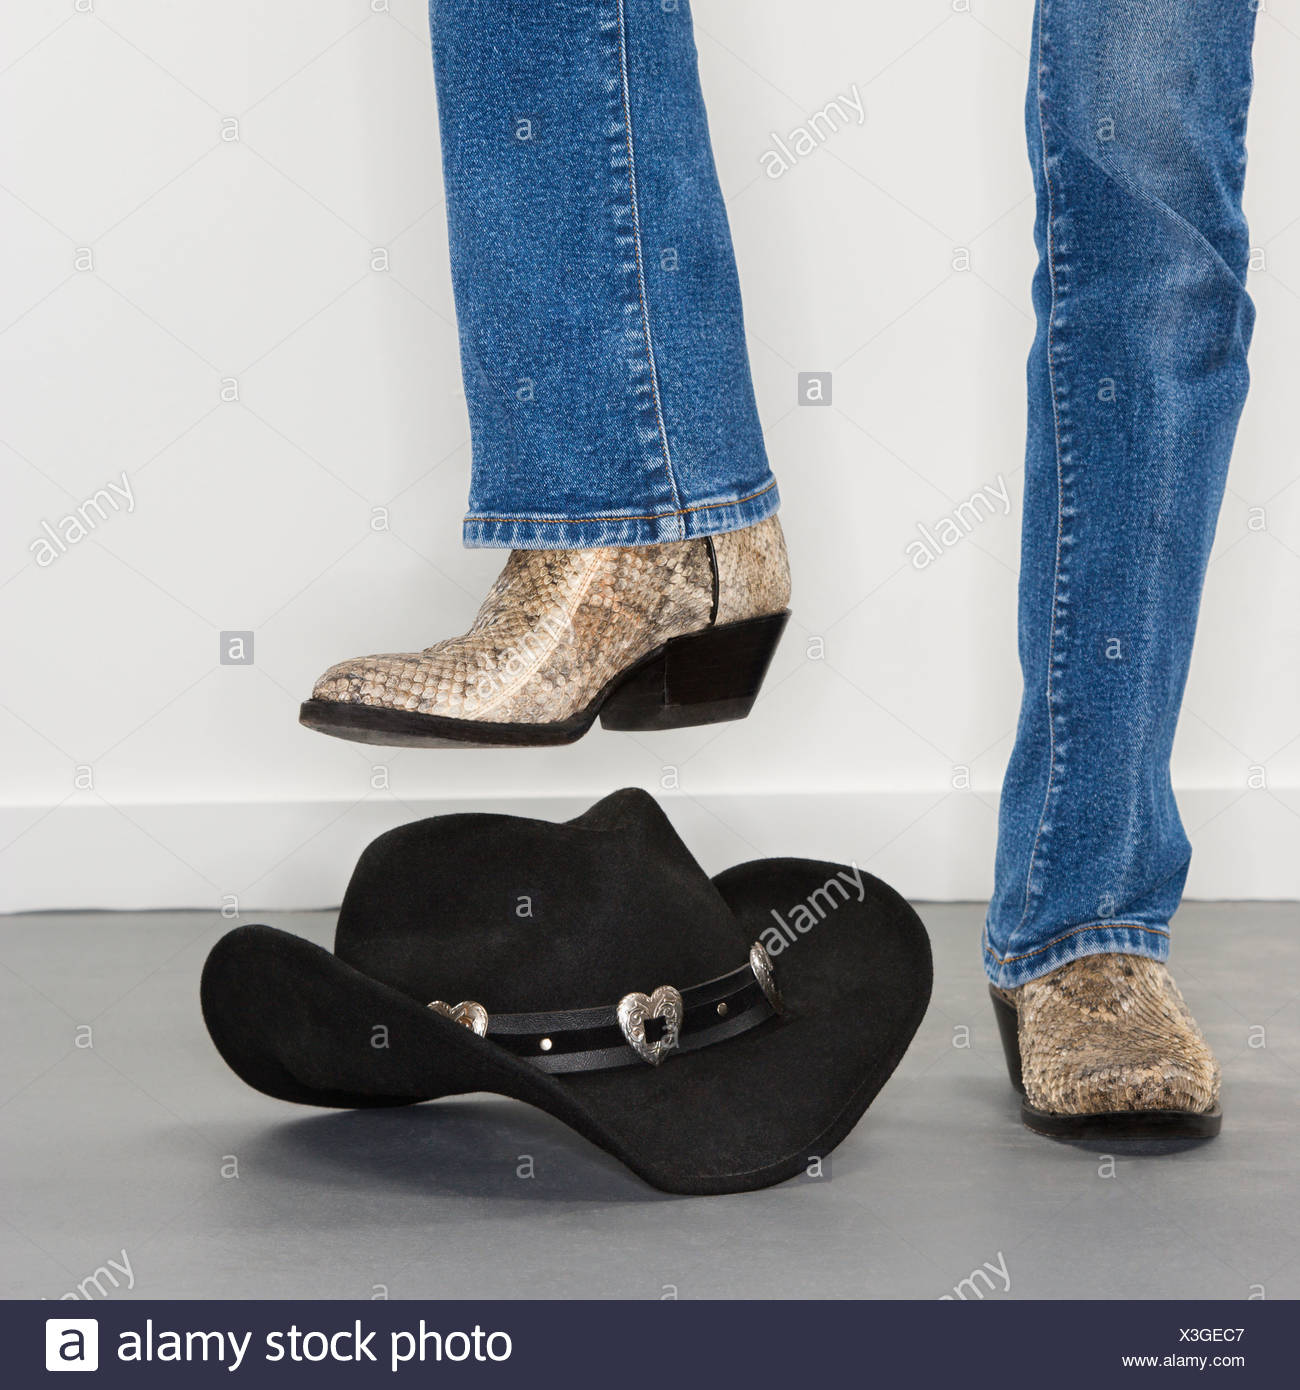 Person Wearing Cowboy Boots Stock Photos & Person Wearing ...